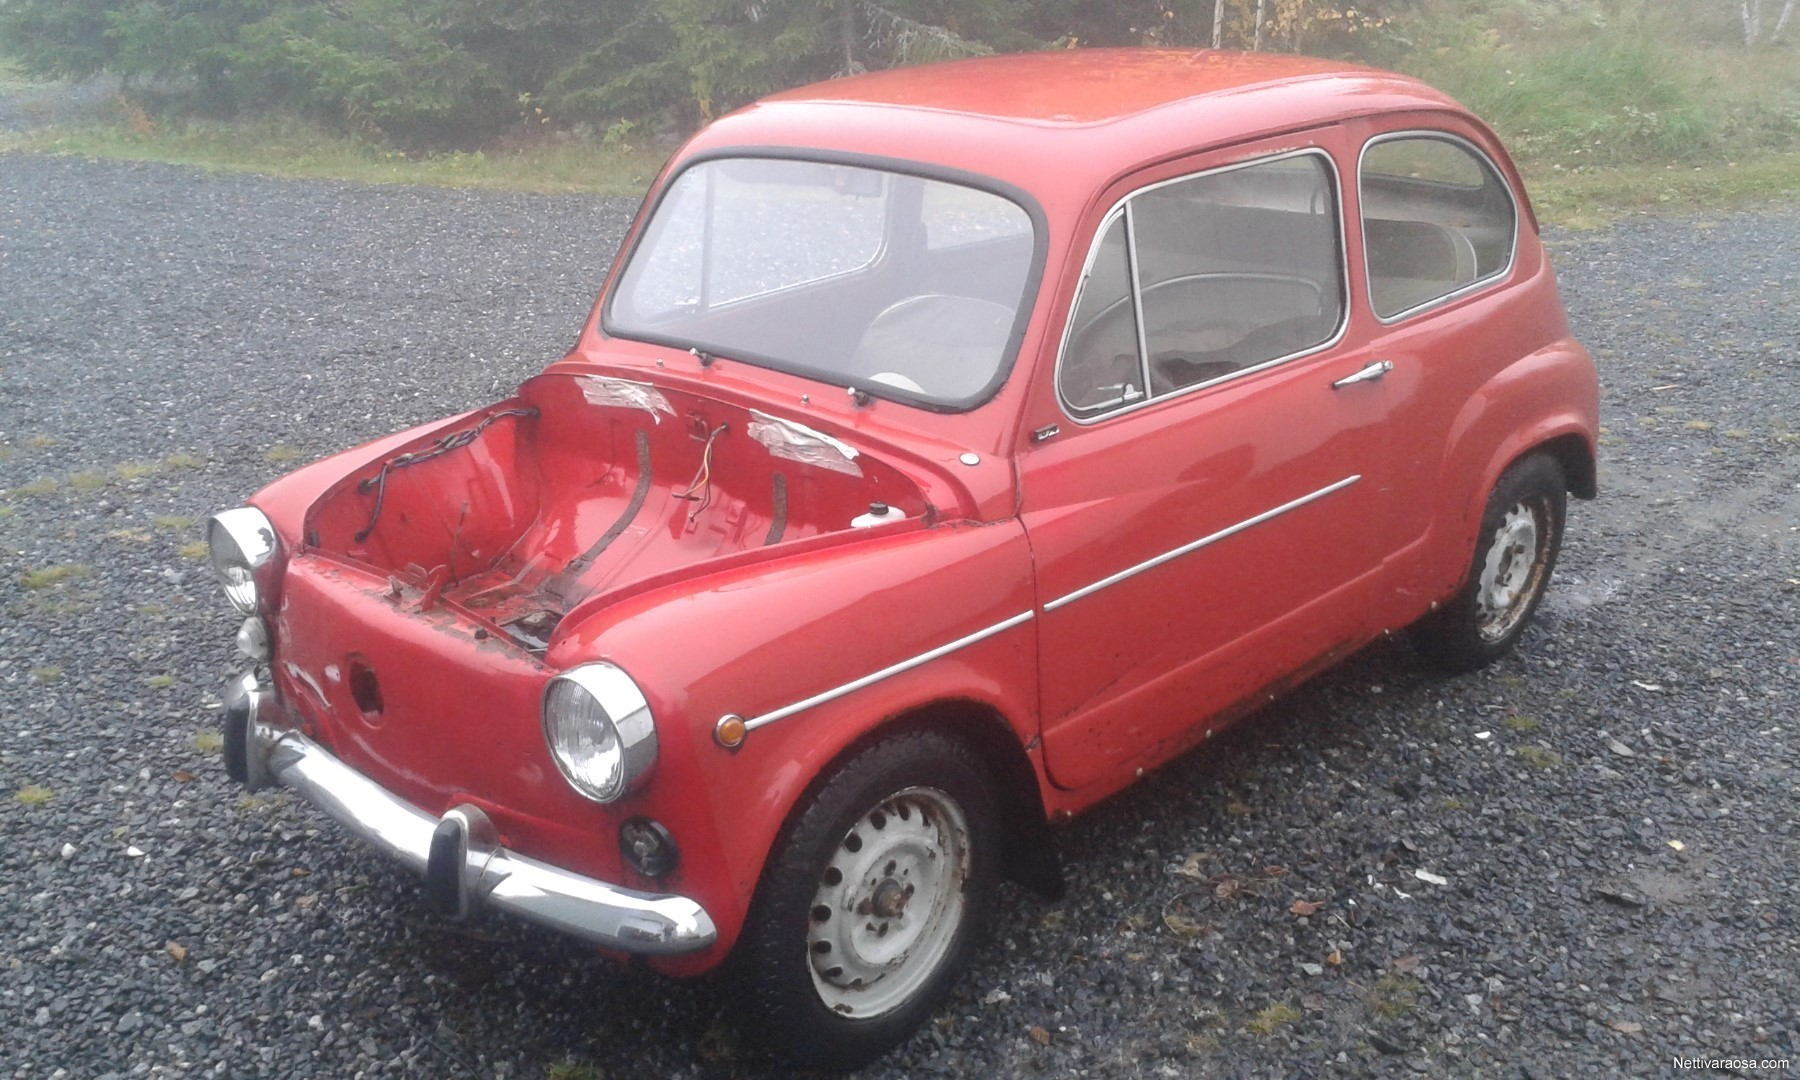 Used 1971 Fiat 600 for sale in Surrey | Pistonheads |Fiat 600 1971